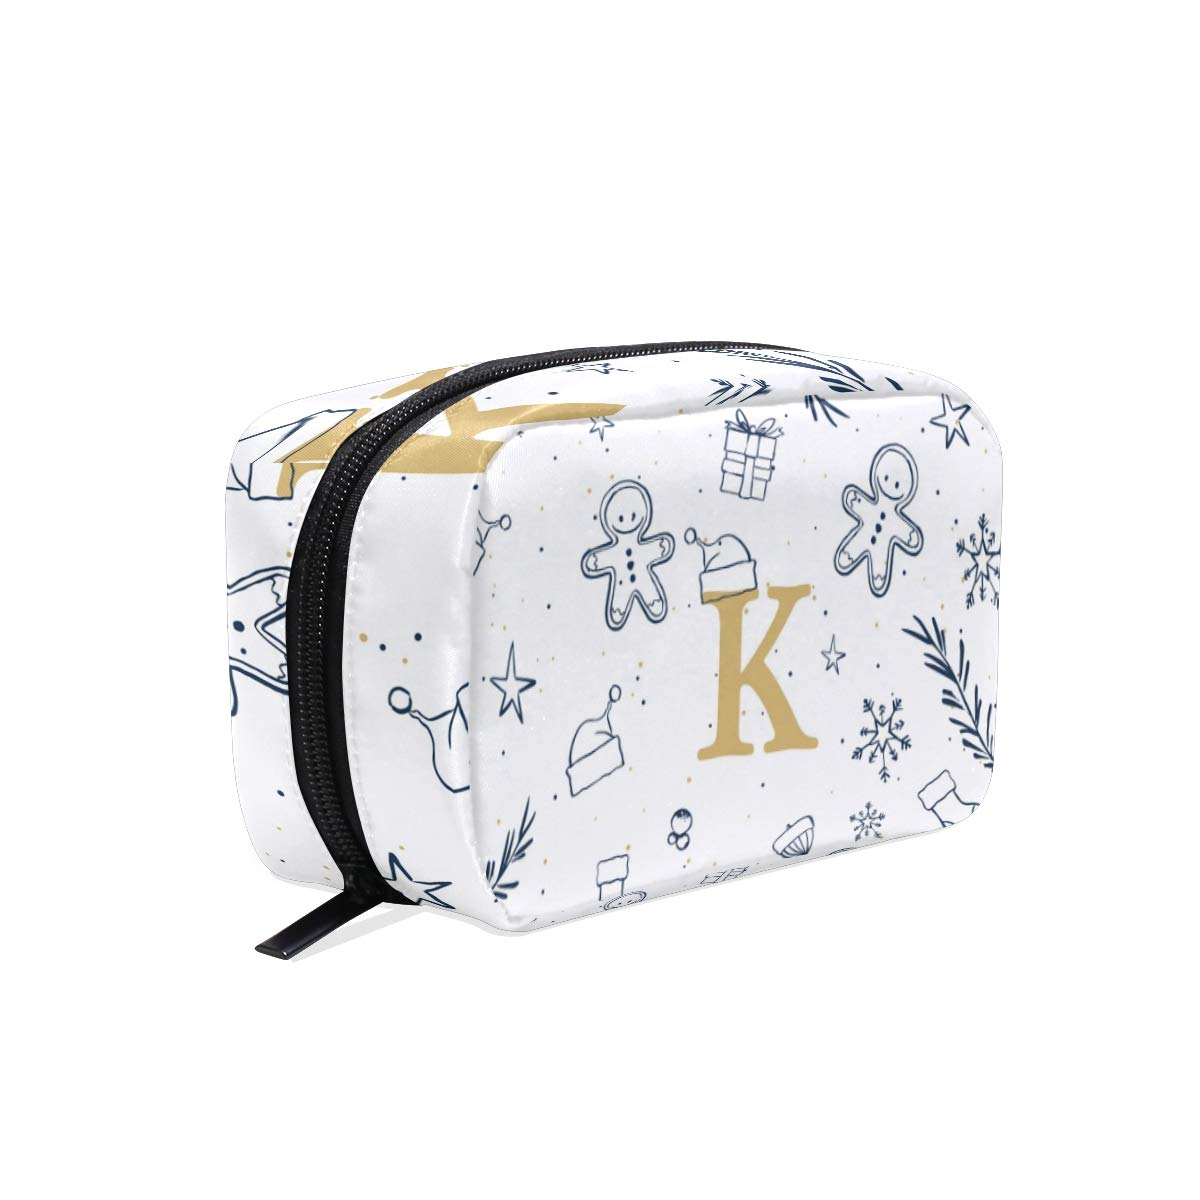 Makeup Pouch with Xmas Letter K Initial Monogram Print- Cosmetic Bags Toiletry Case for Women